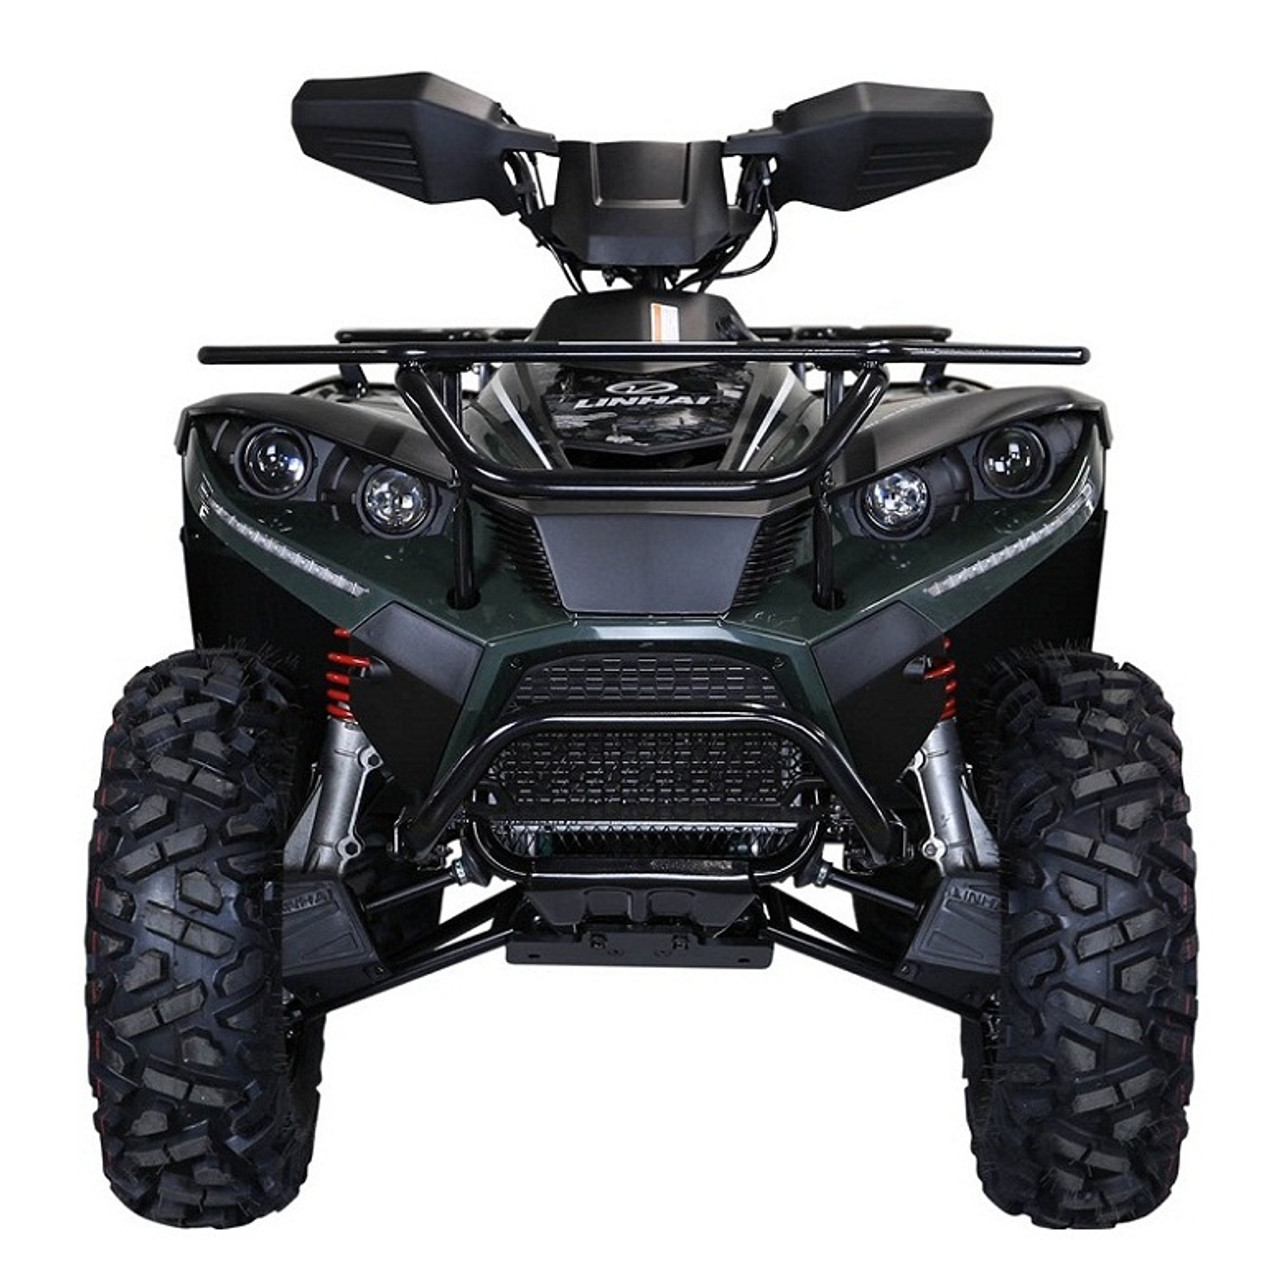 MASSIMO MSA 400 352cc, 2019 Models Four Stroke Single Cylinder SOHC, Liquid Cooled - Fully Assembled and Tested